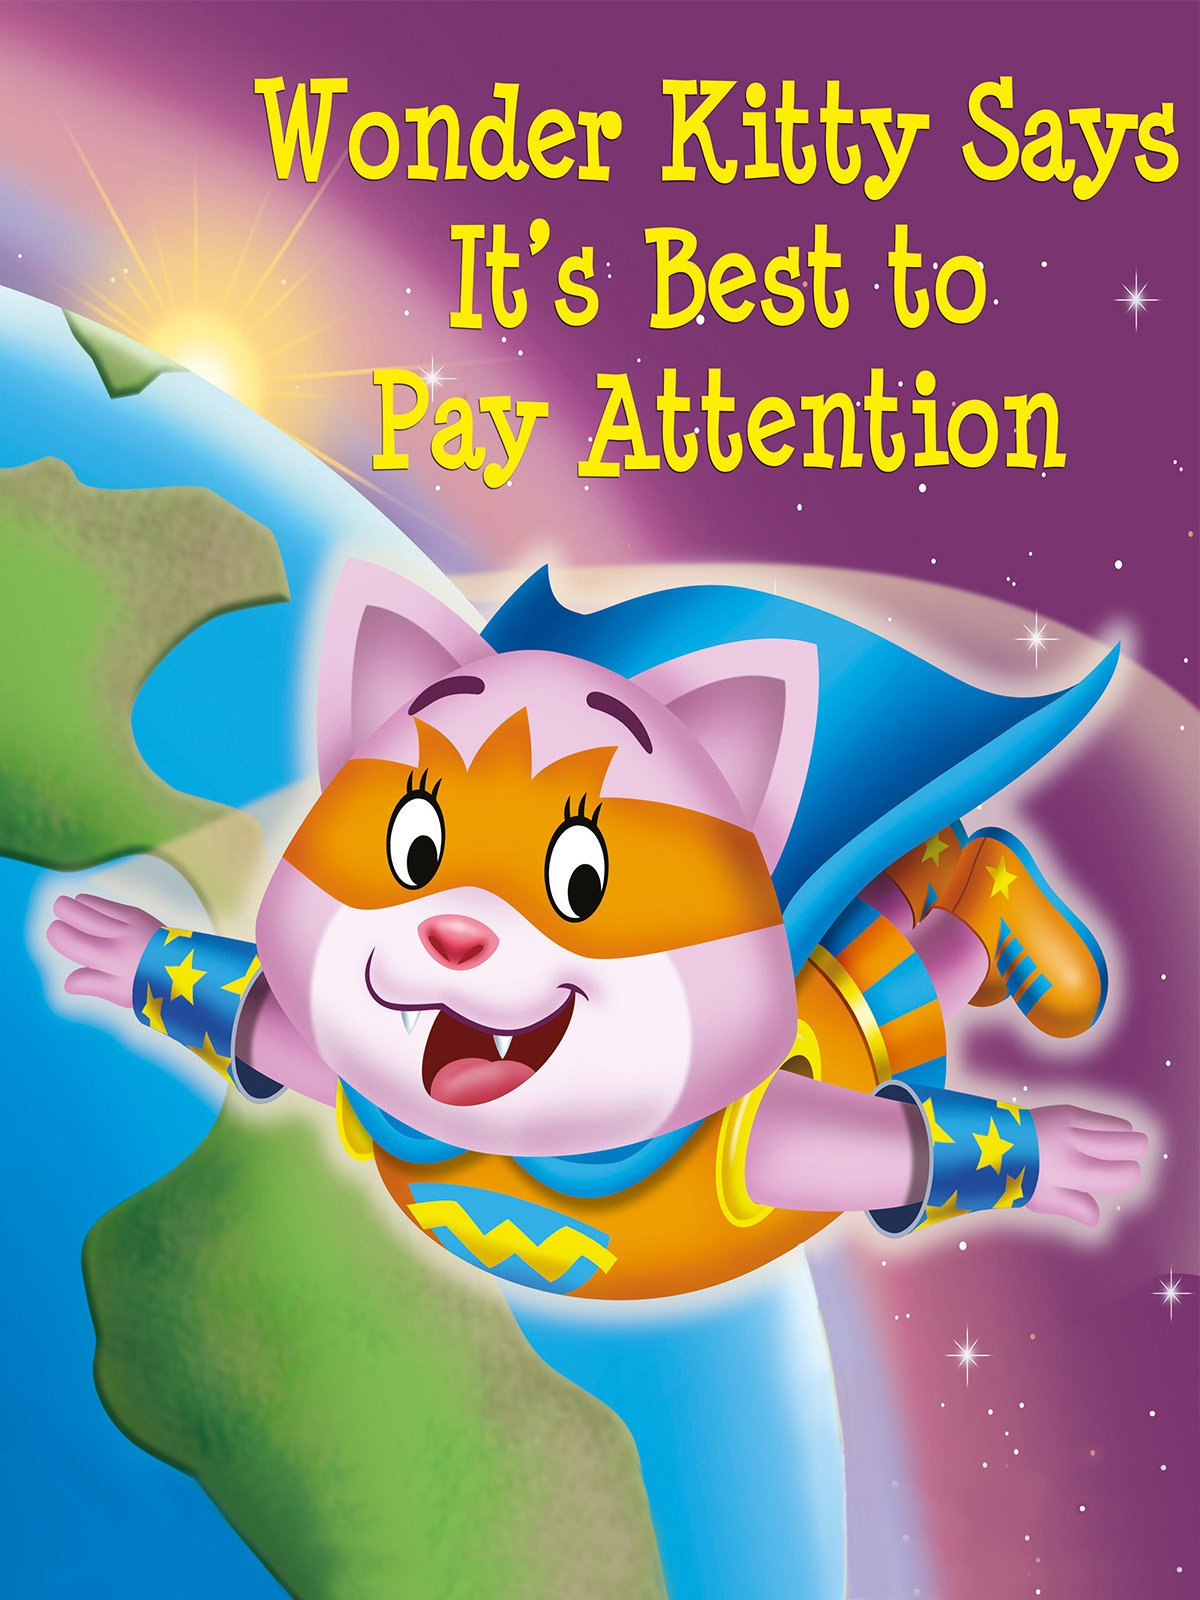 Wonder Kitty Says It's Best to Pay Attention